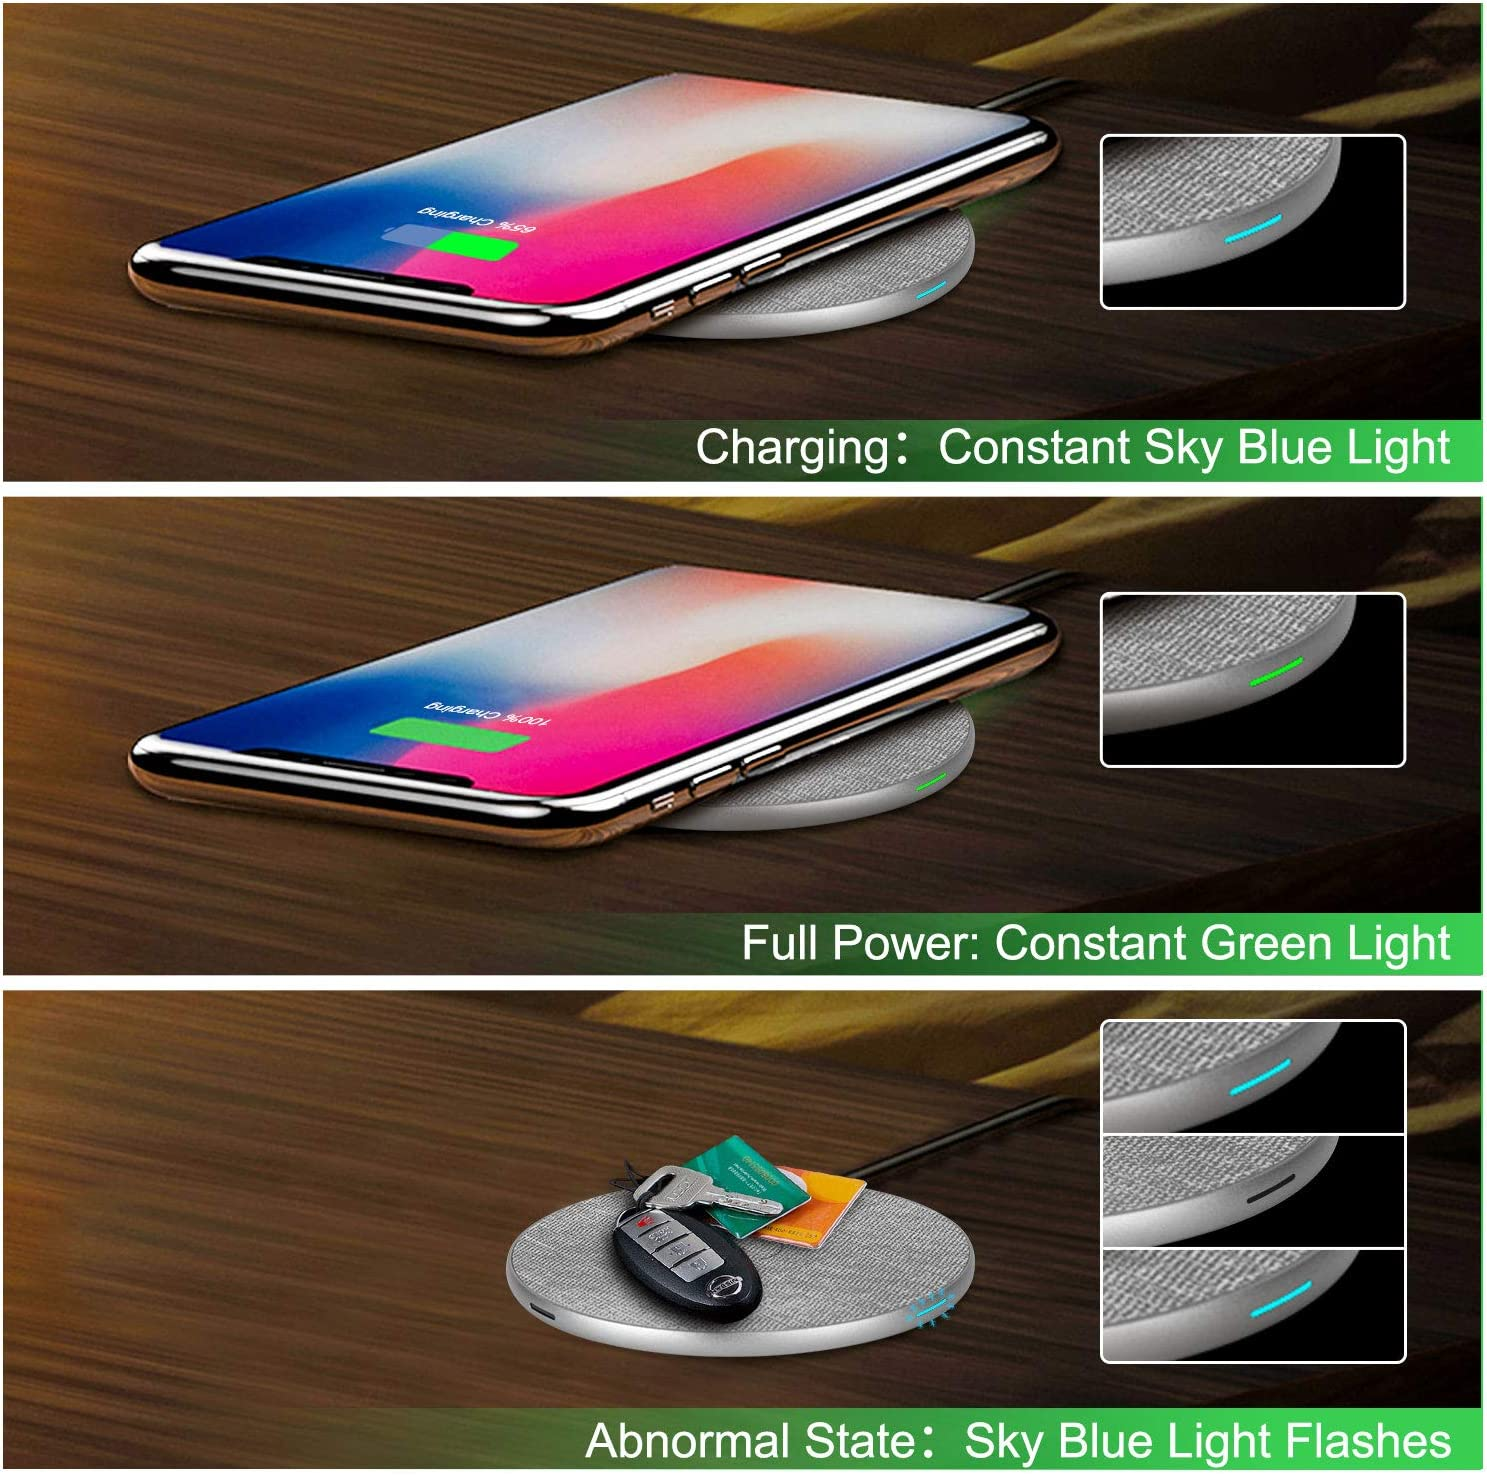 No AC Adapter Wireless Charger 10W for Galaxy S10//S10 Plus//S10E//S9 RATEL Qi-Certified 7.5W Wireless Charging Compatible with iPhone 11//11Pro//11Pro Max//Xs MAX//XR//XS//X//8Plus//8 5W for All Qi Phones